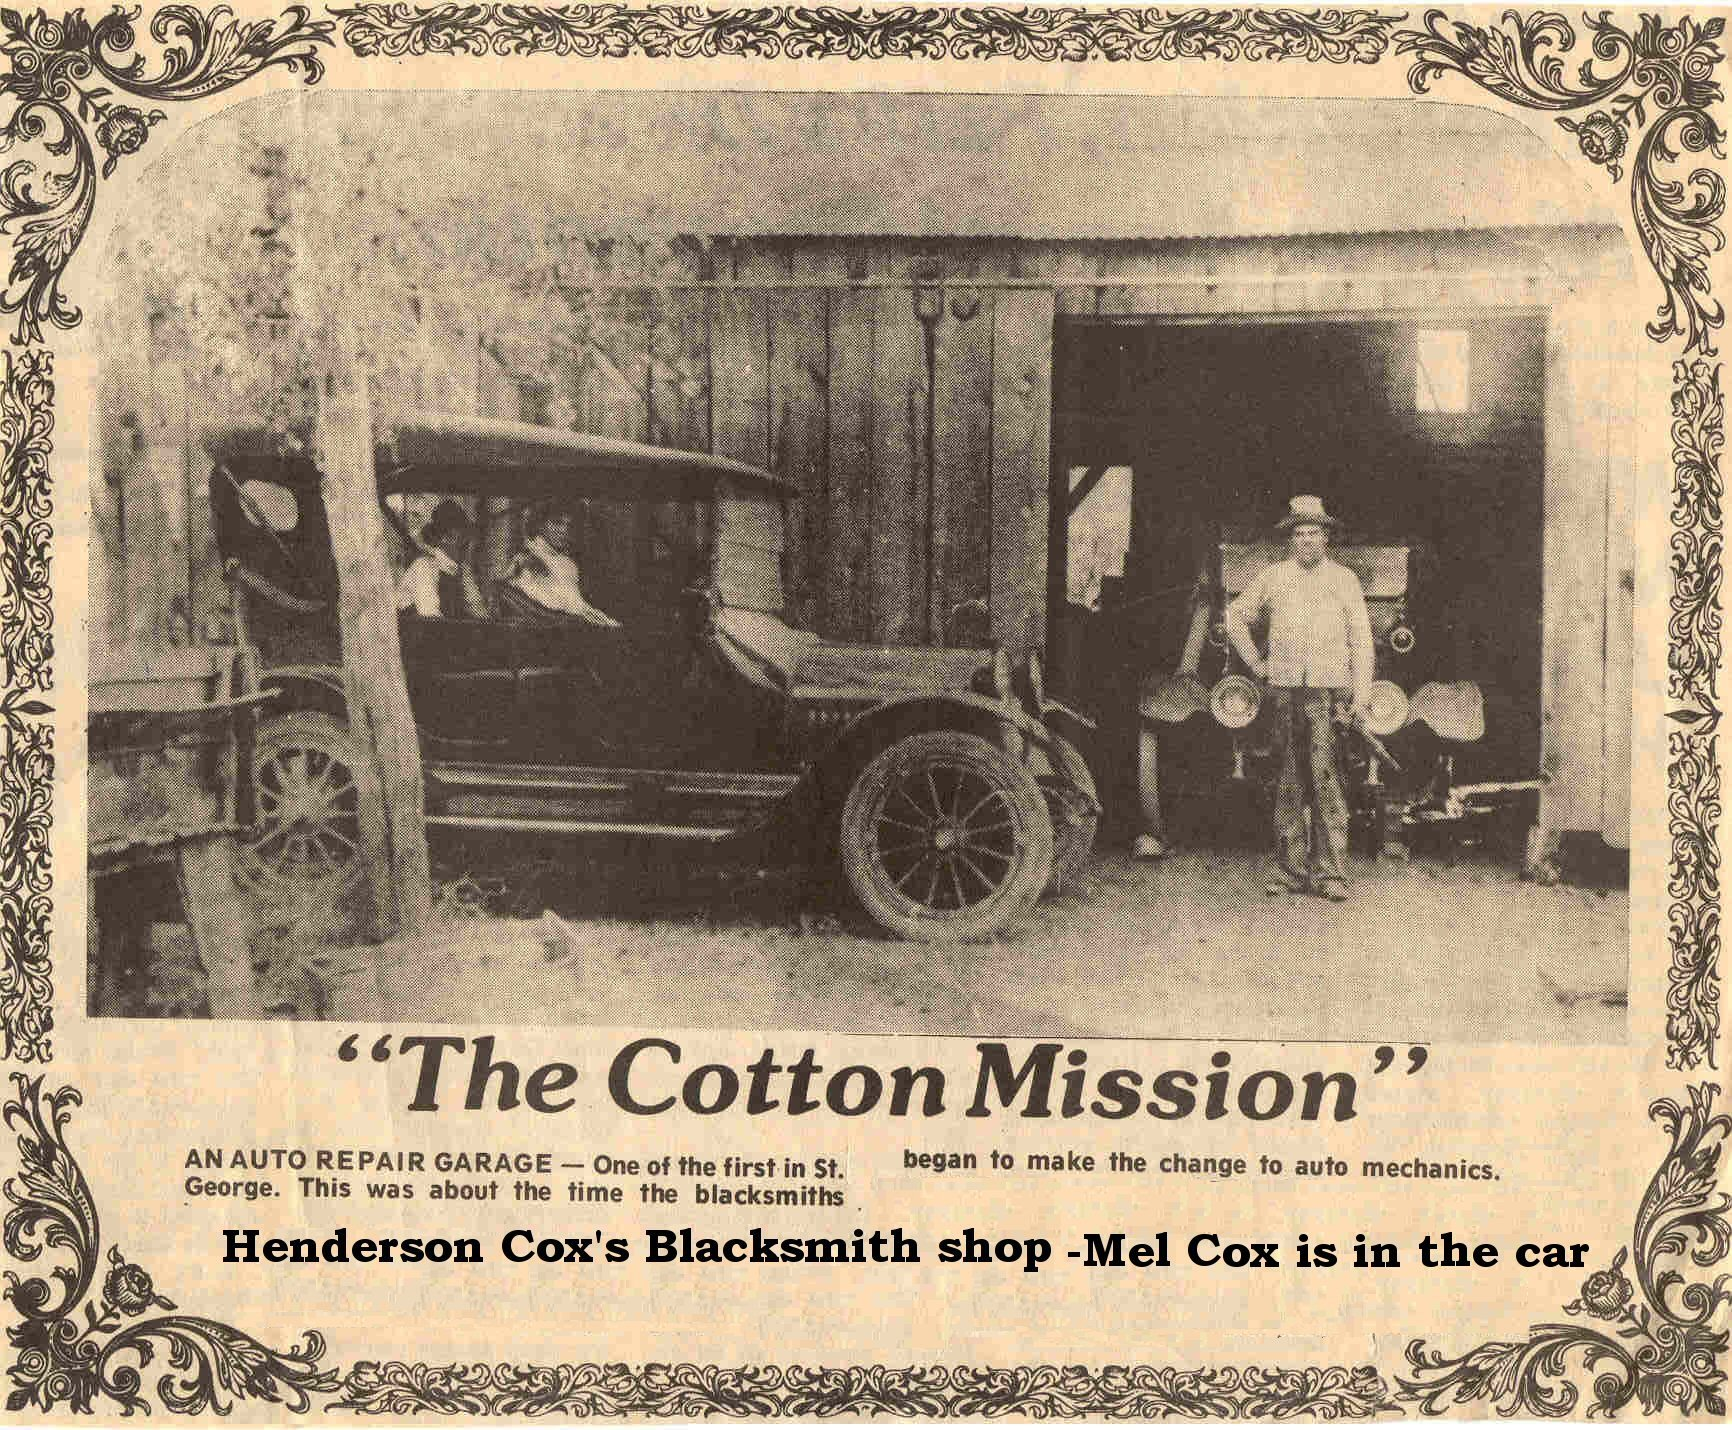 Henderson Cox's blacksmith shop